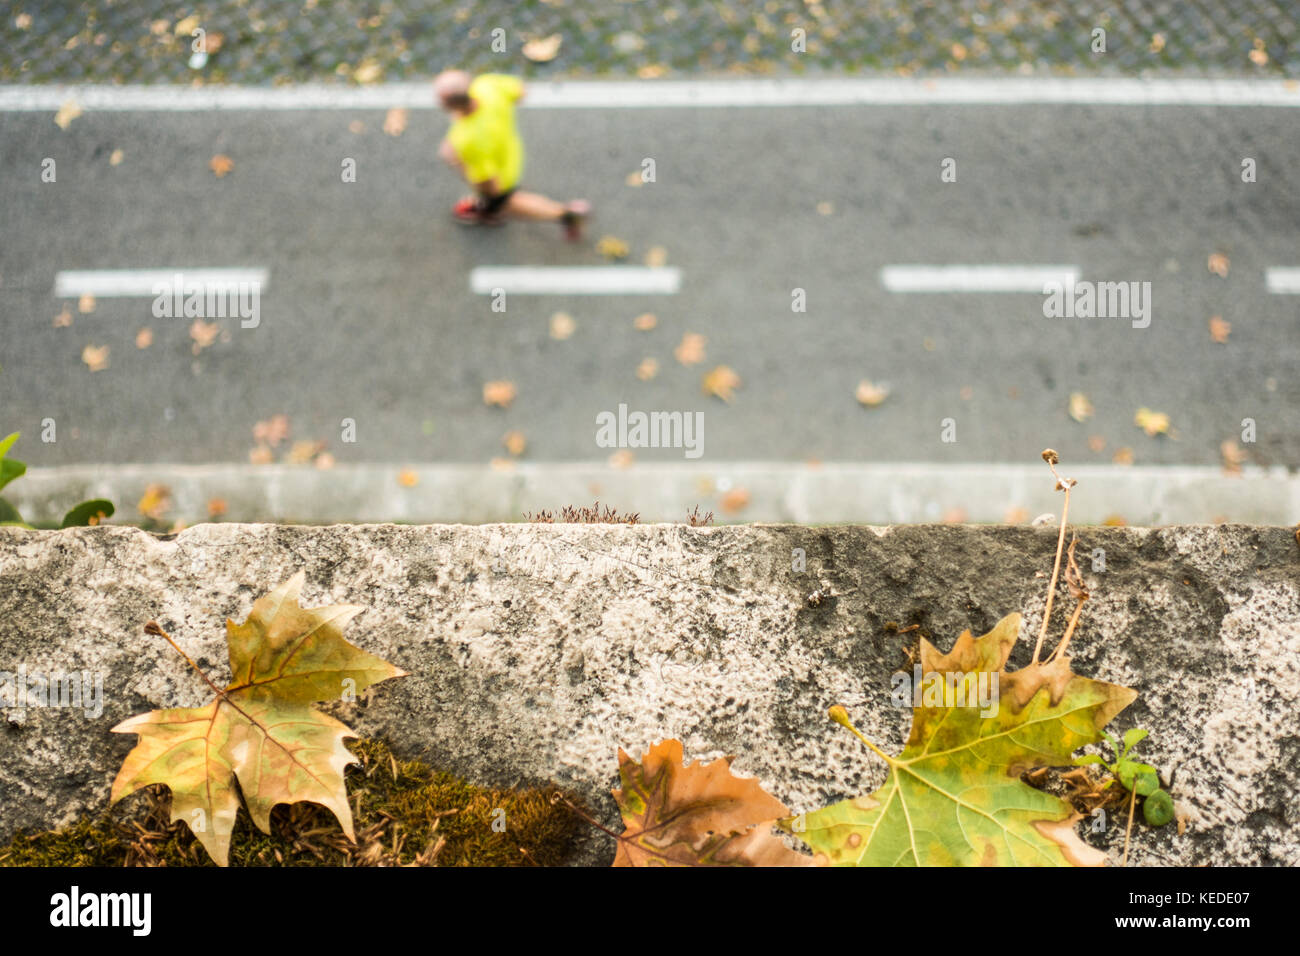 -Selective Focus- View from above, defocused/blurred person with a yellow t-shirt  is running on a pedestrian track. Stock Photo